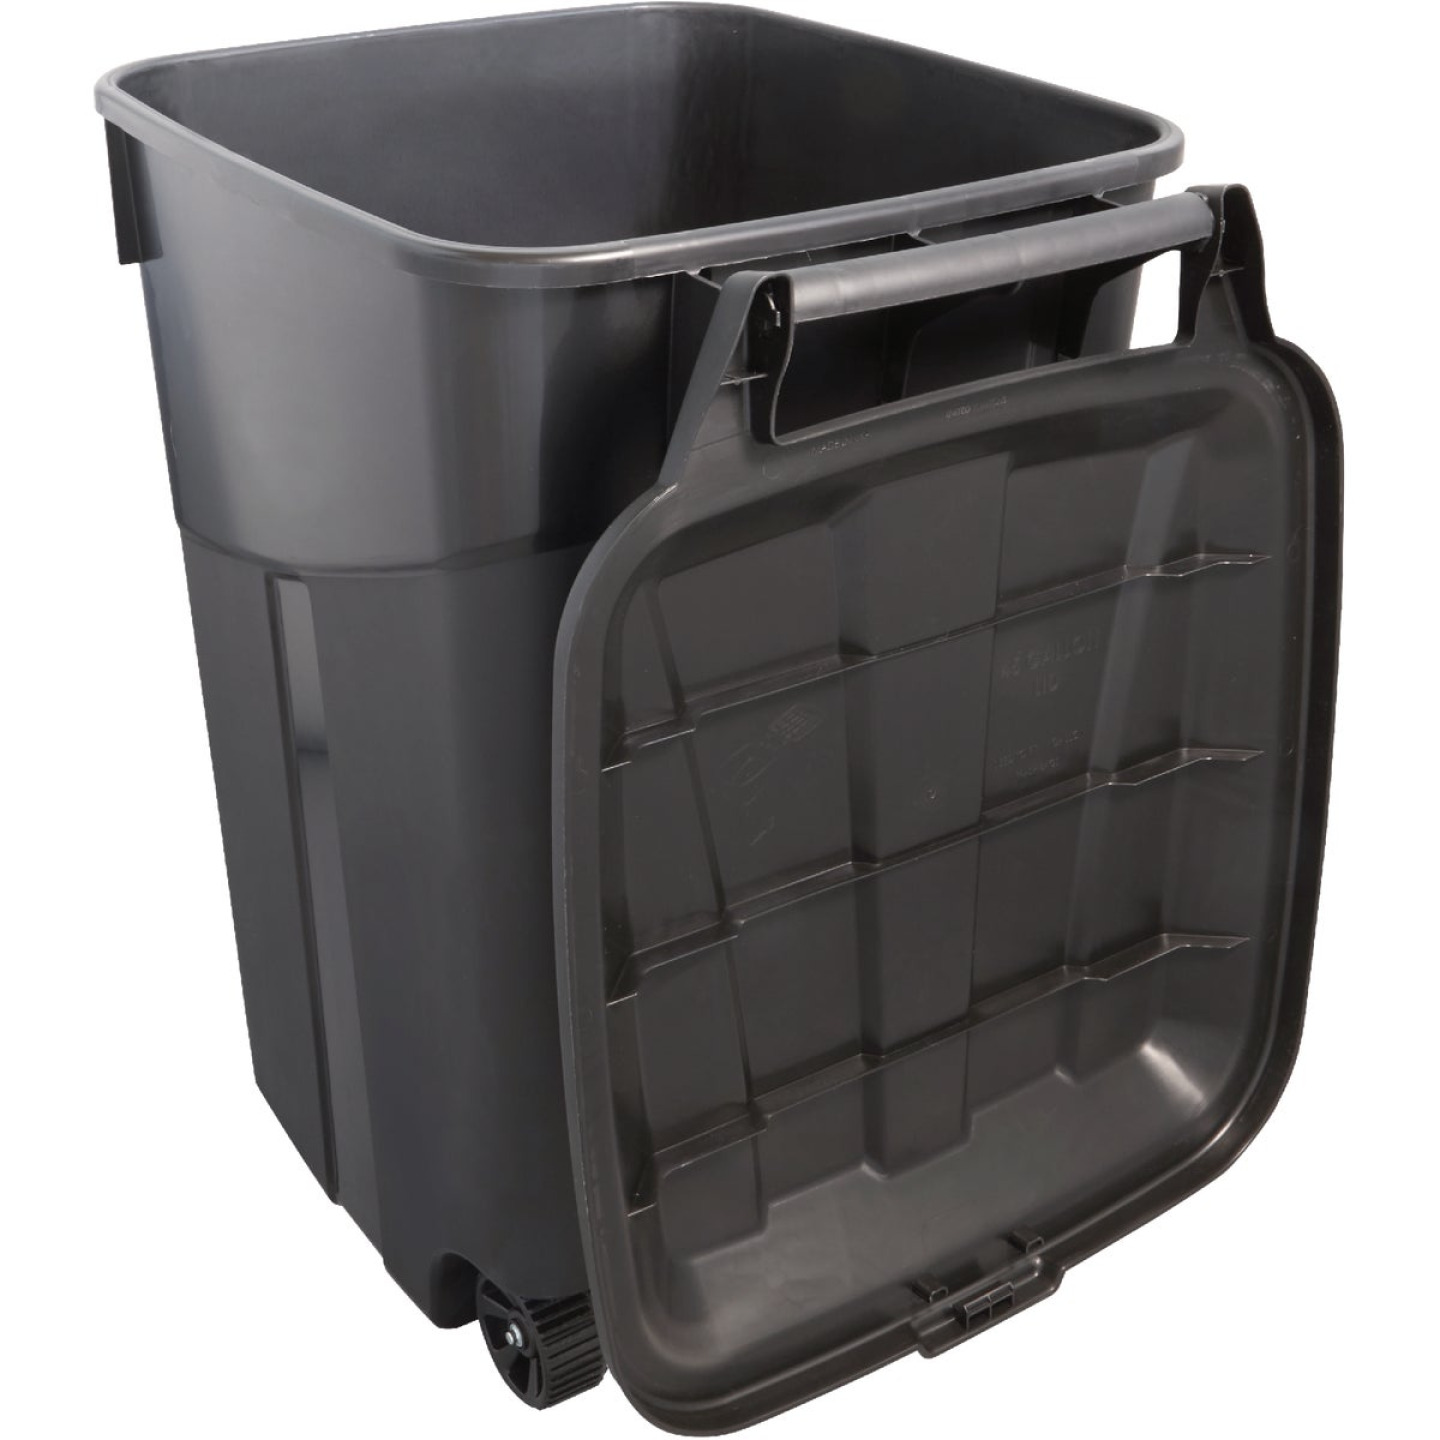 United Solutions Rough and Rugged 45 Gal. Wheeled Trash Can with Attached Lid Image 6